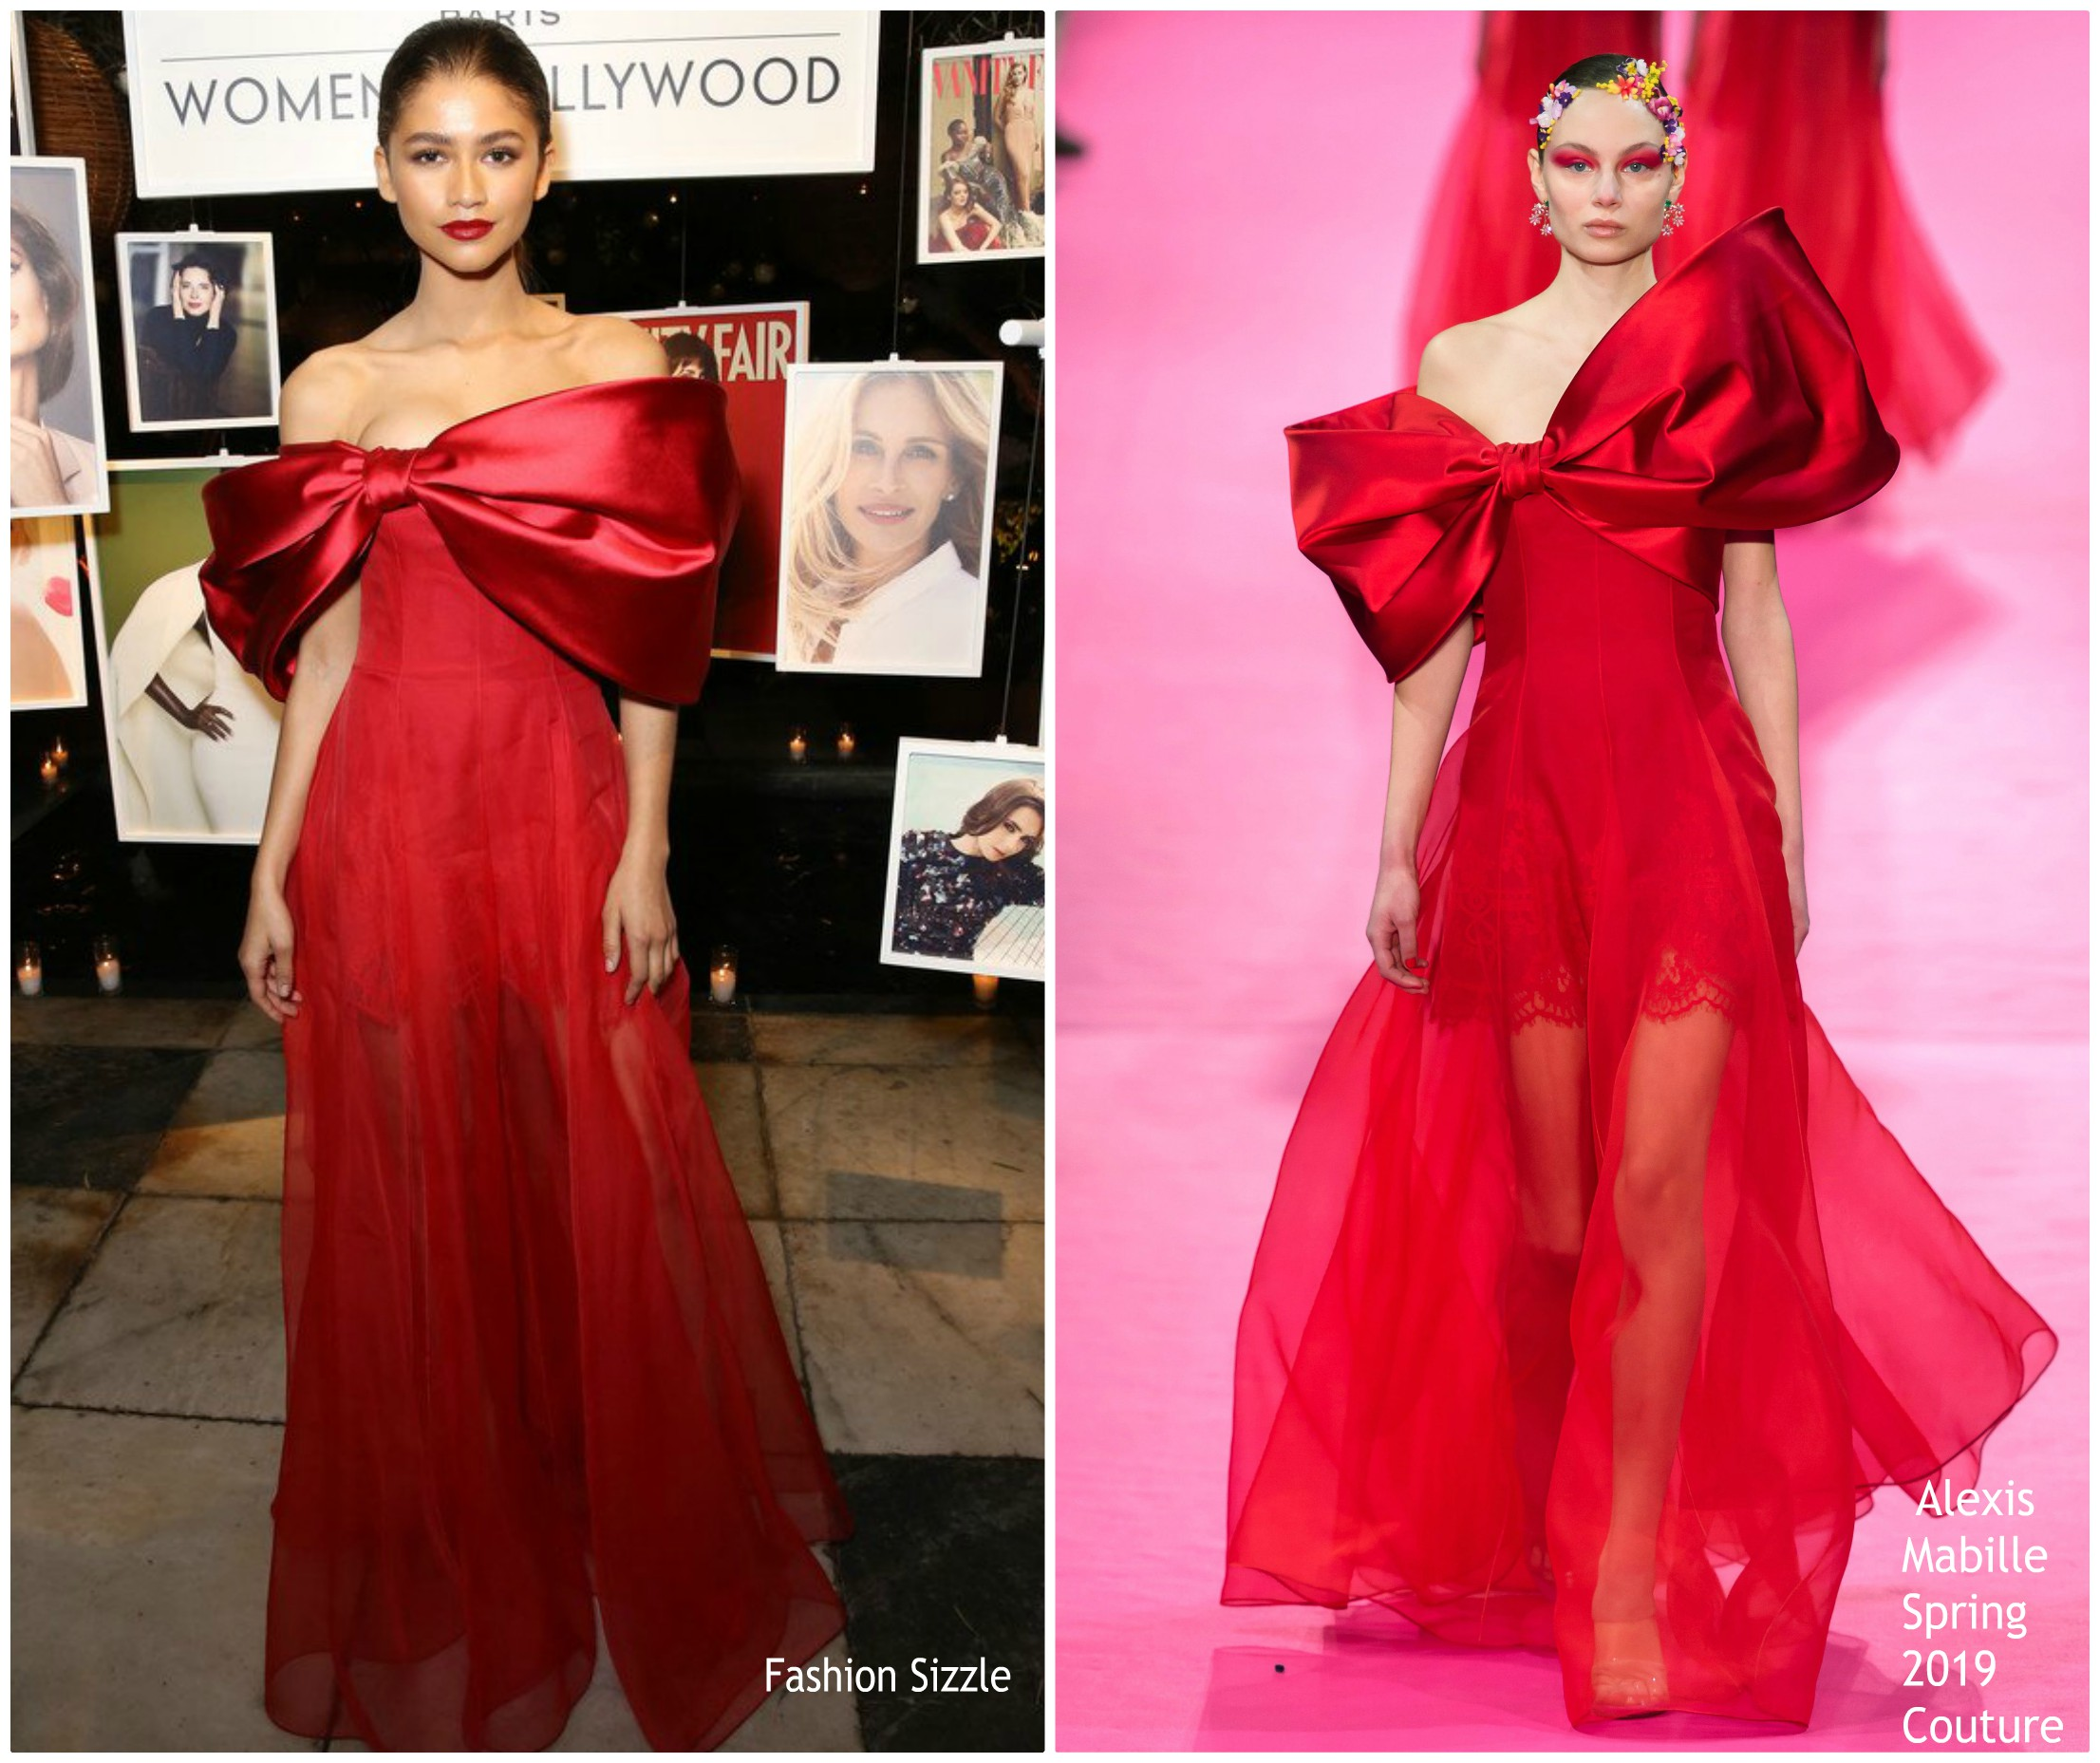 zendaya-coleman-in-alexis-mabille-haute-couture-vanity-fair-lancome-toast-women-in-hollywood